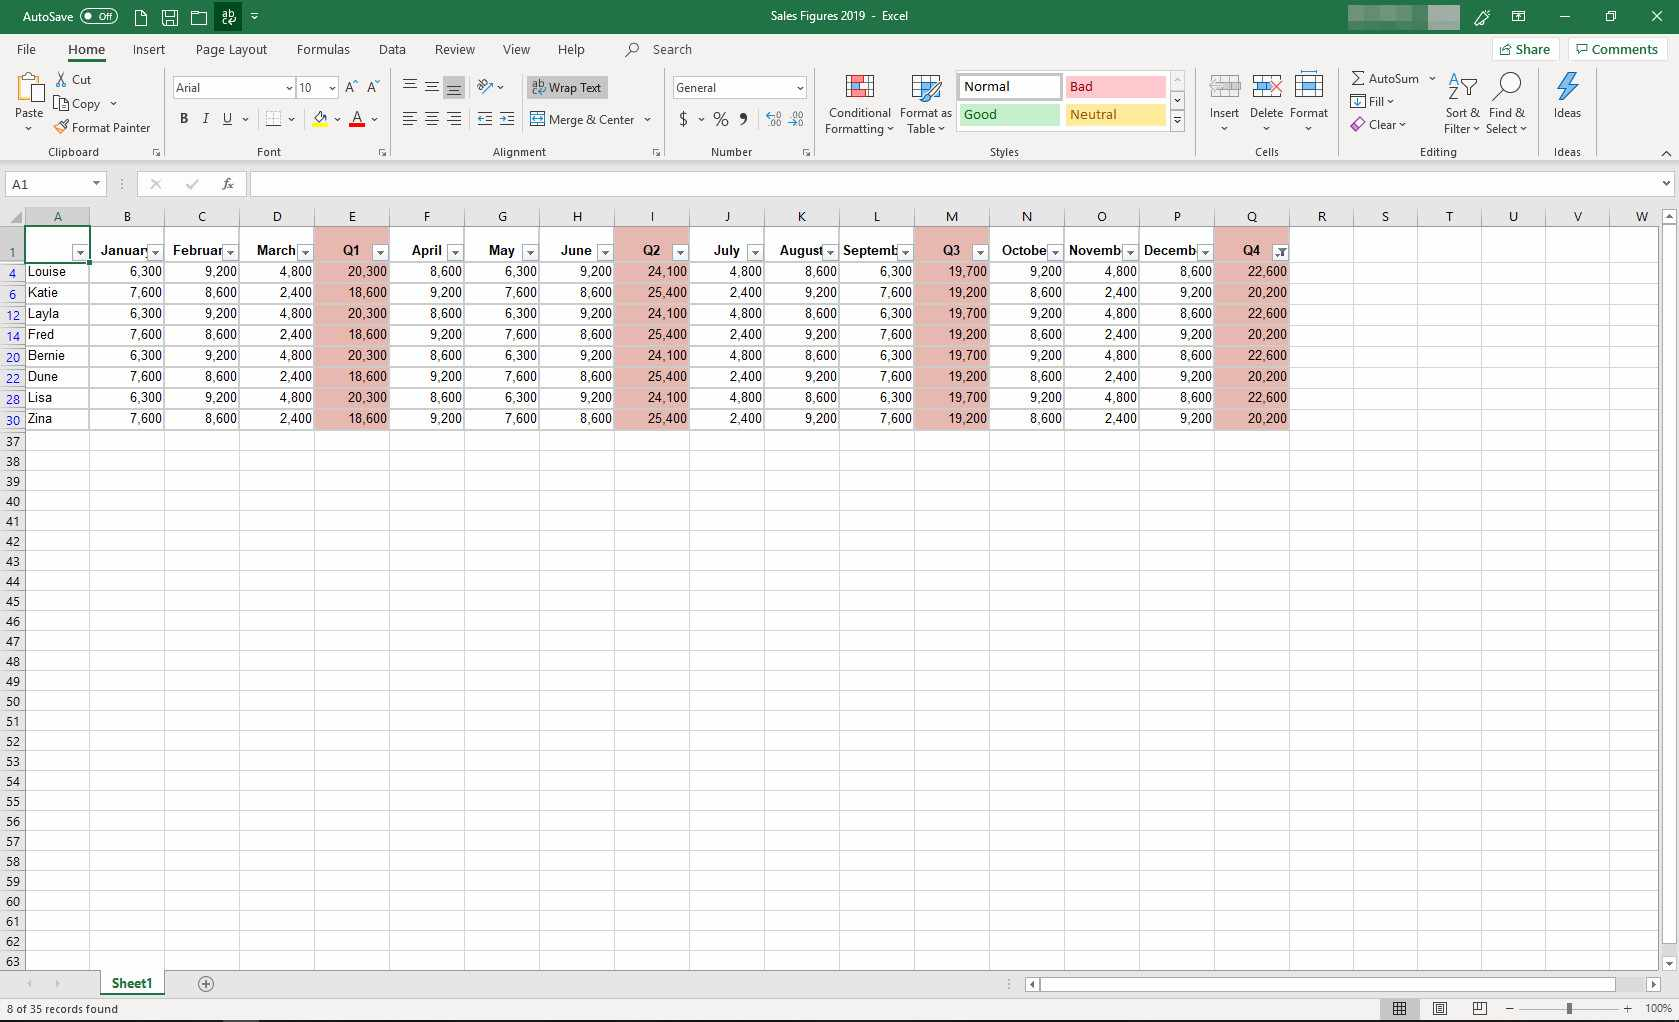 MS Excel with data filtered